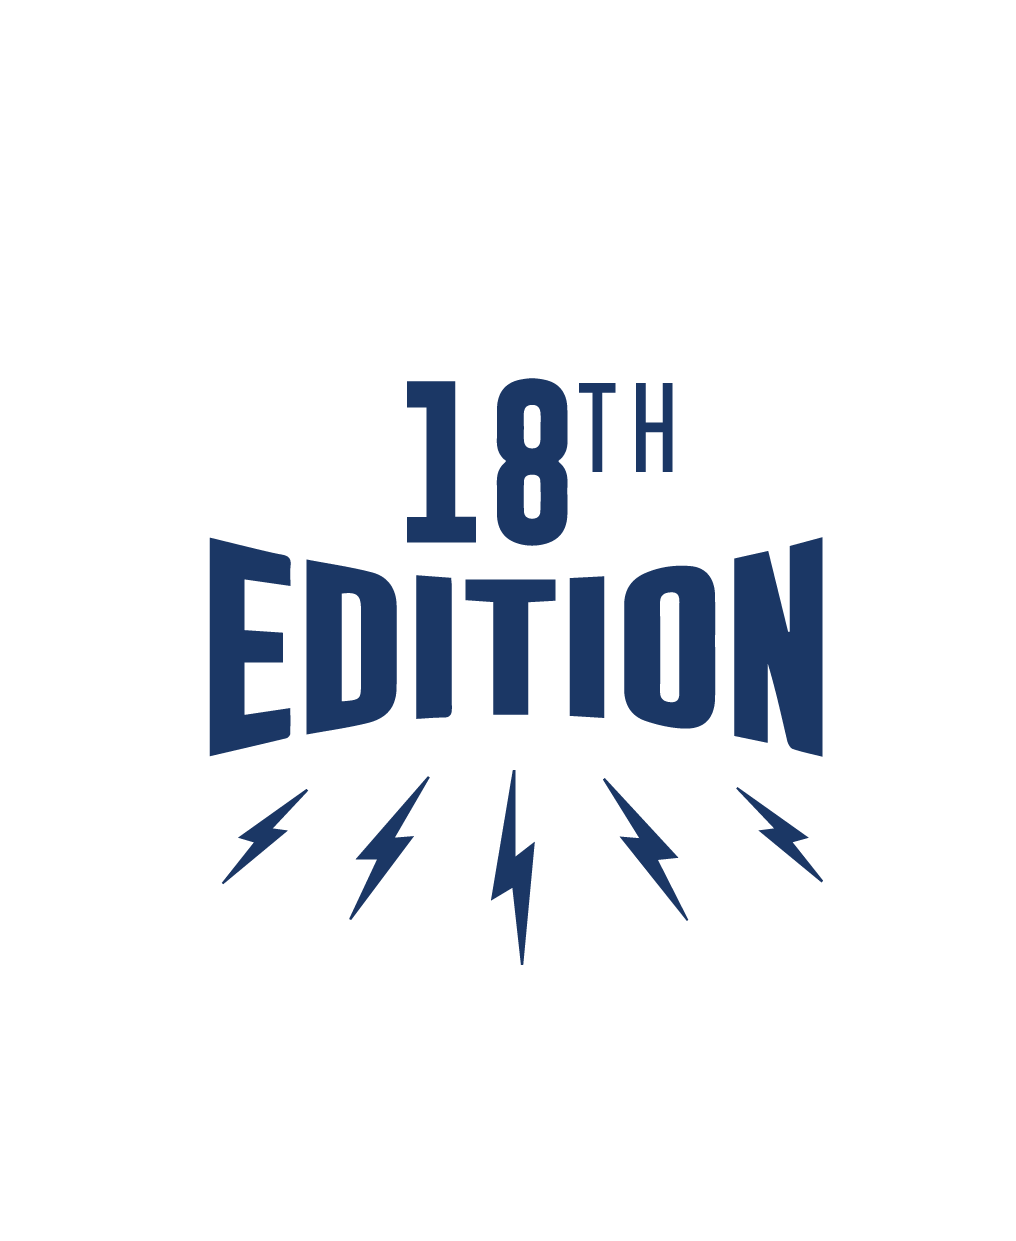 17th edition icon